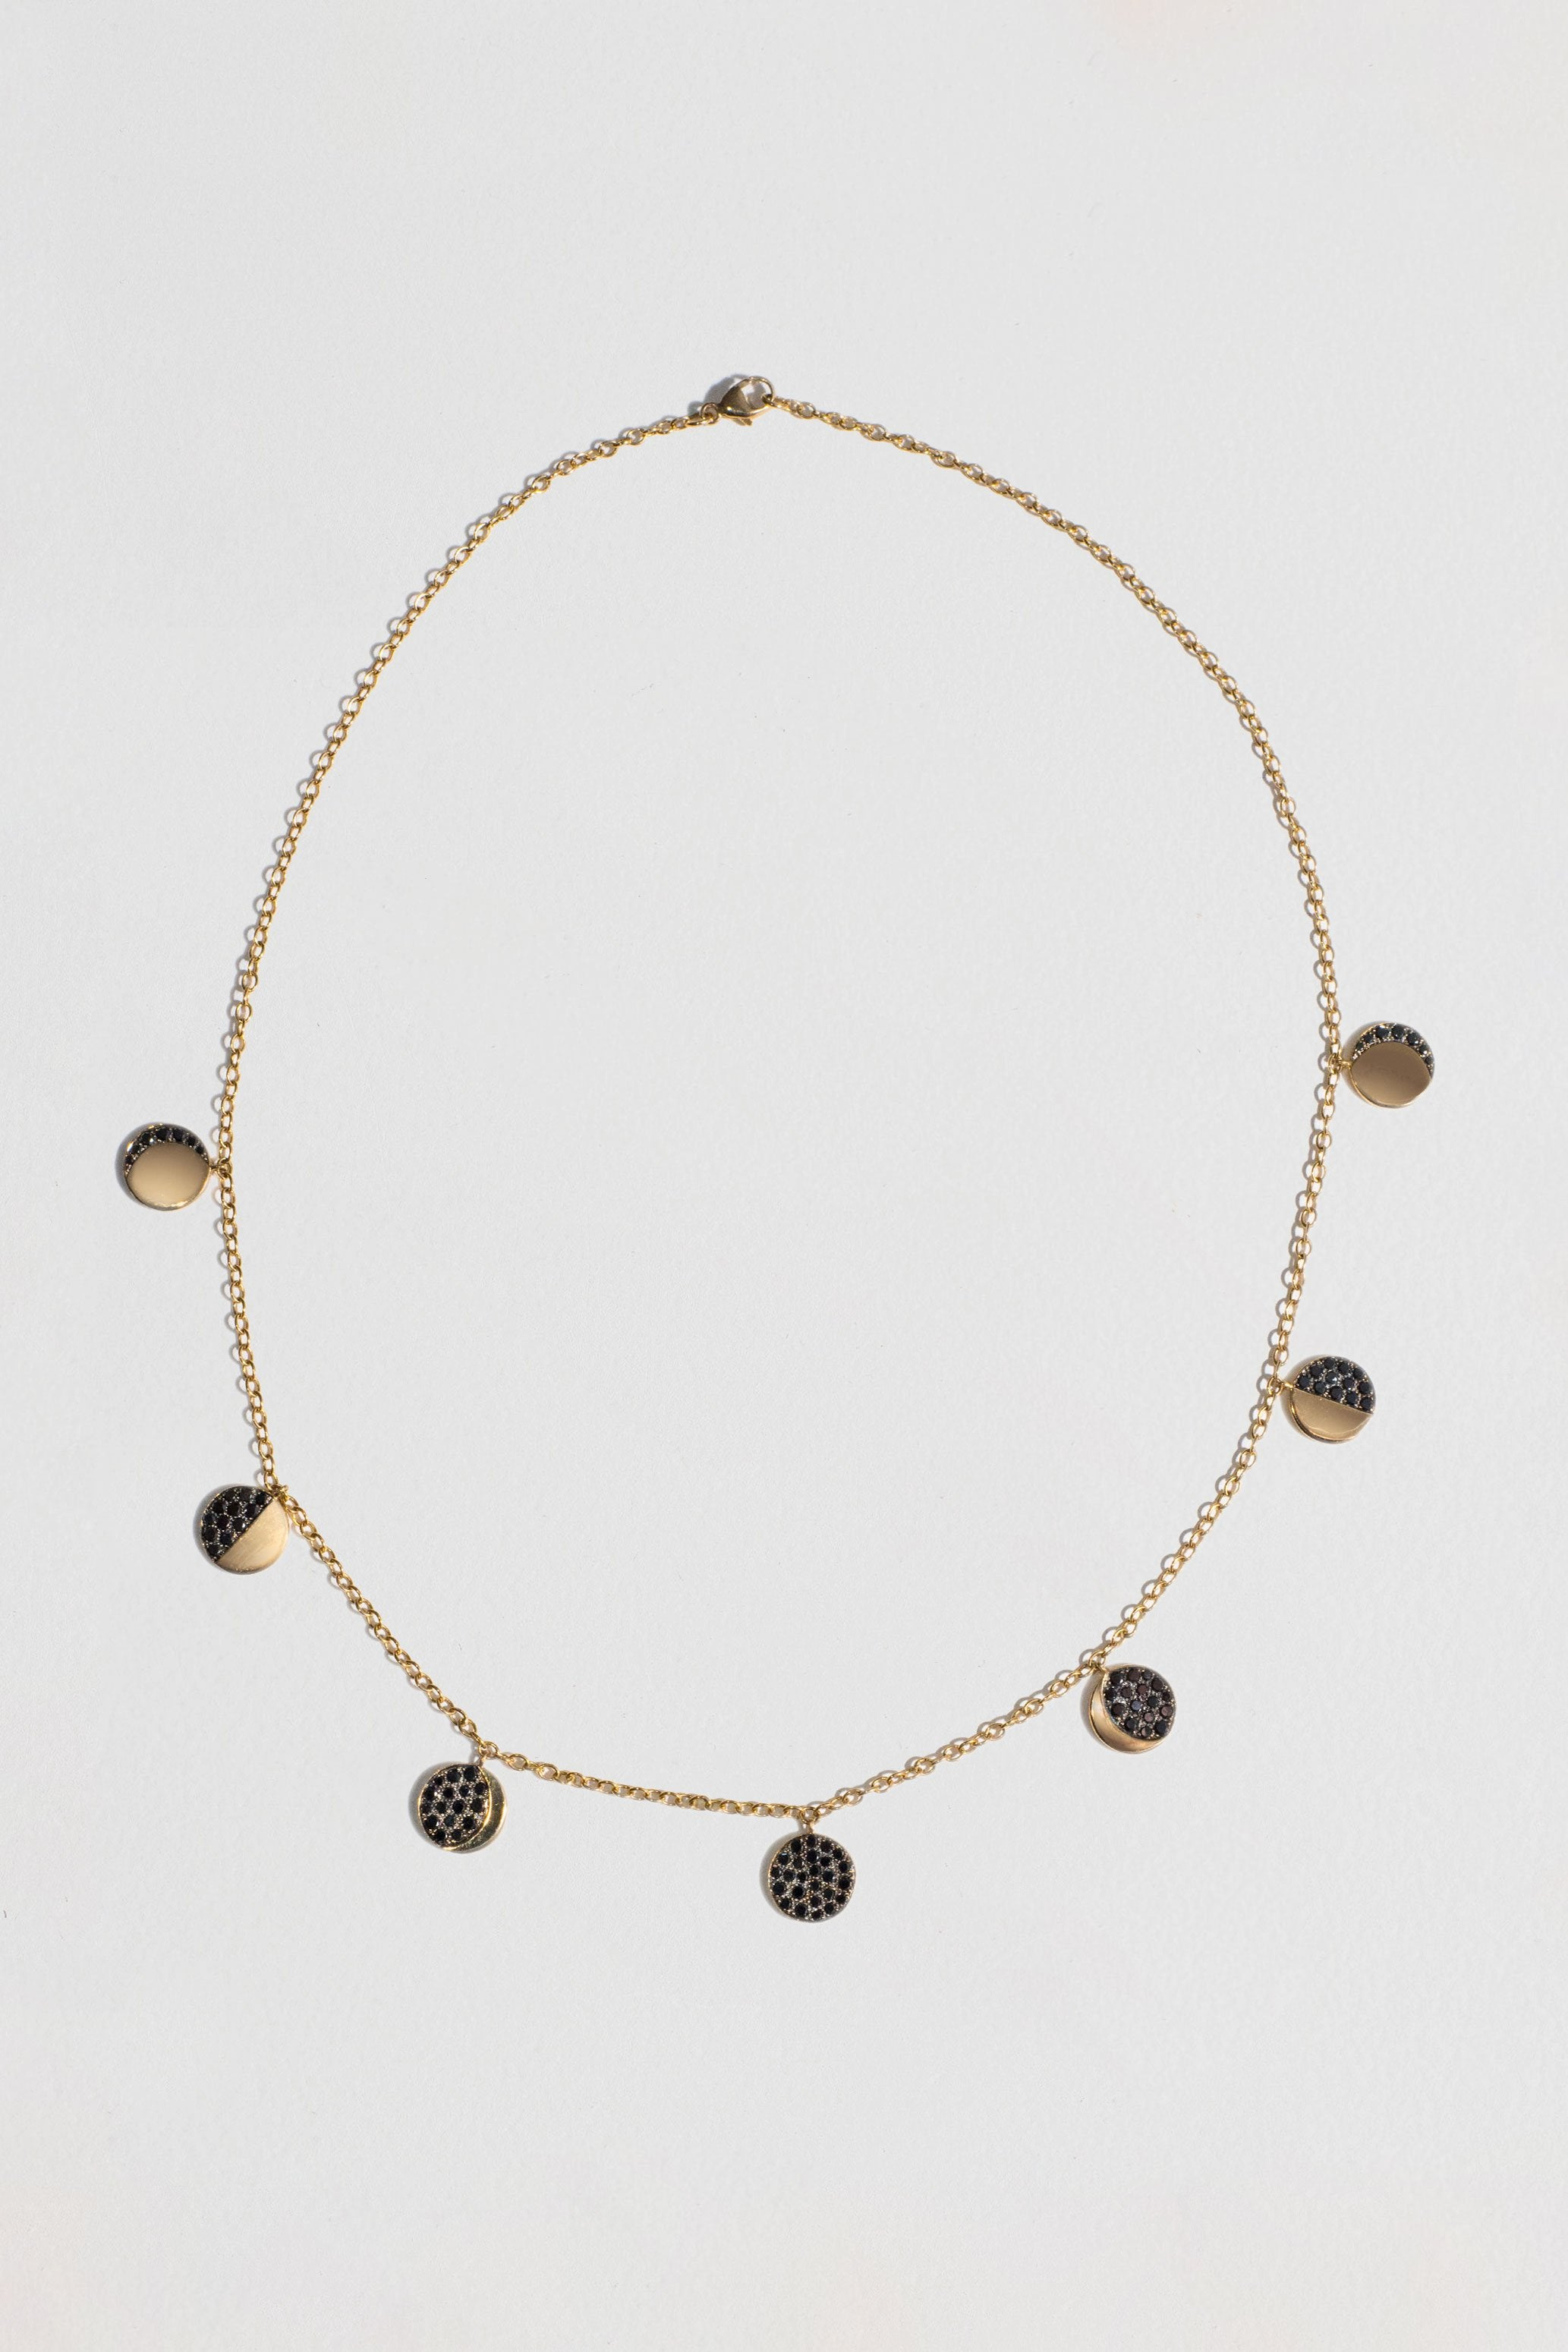 Pamela Love - Moon Phase Necklace, Gold & Black Diamond